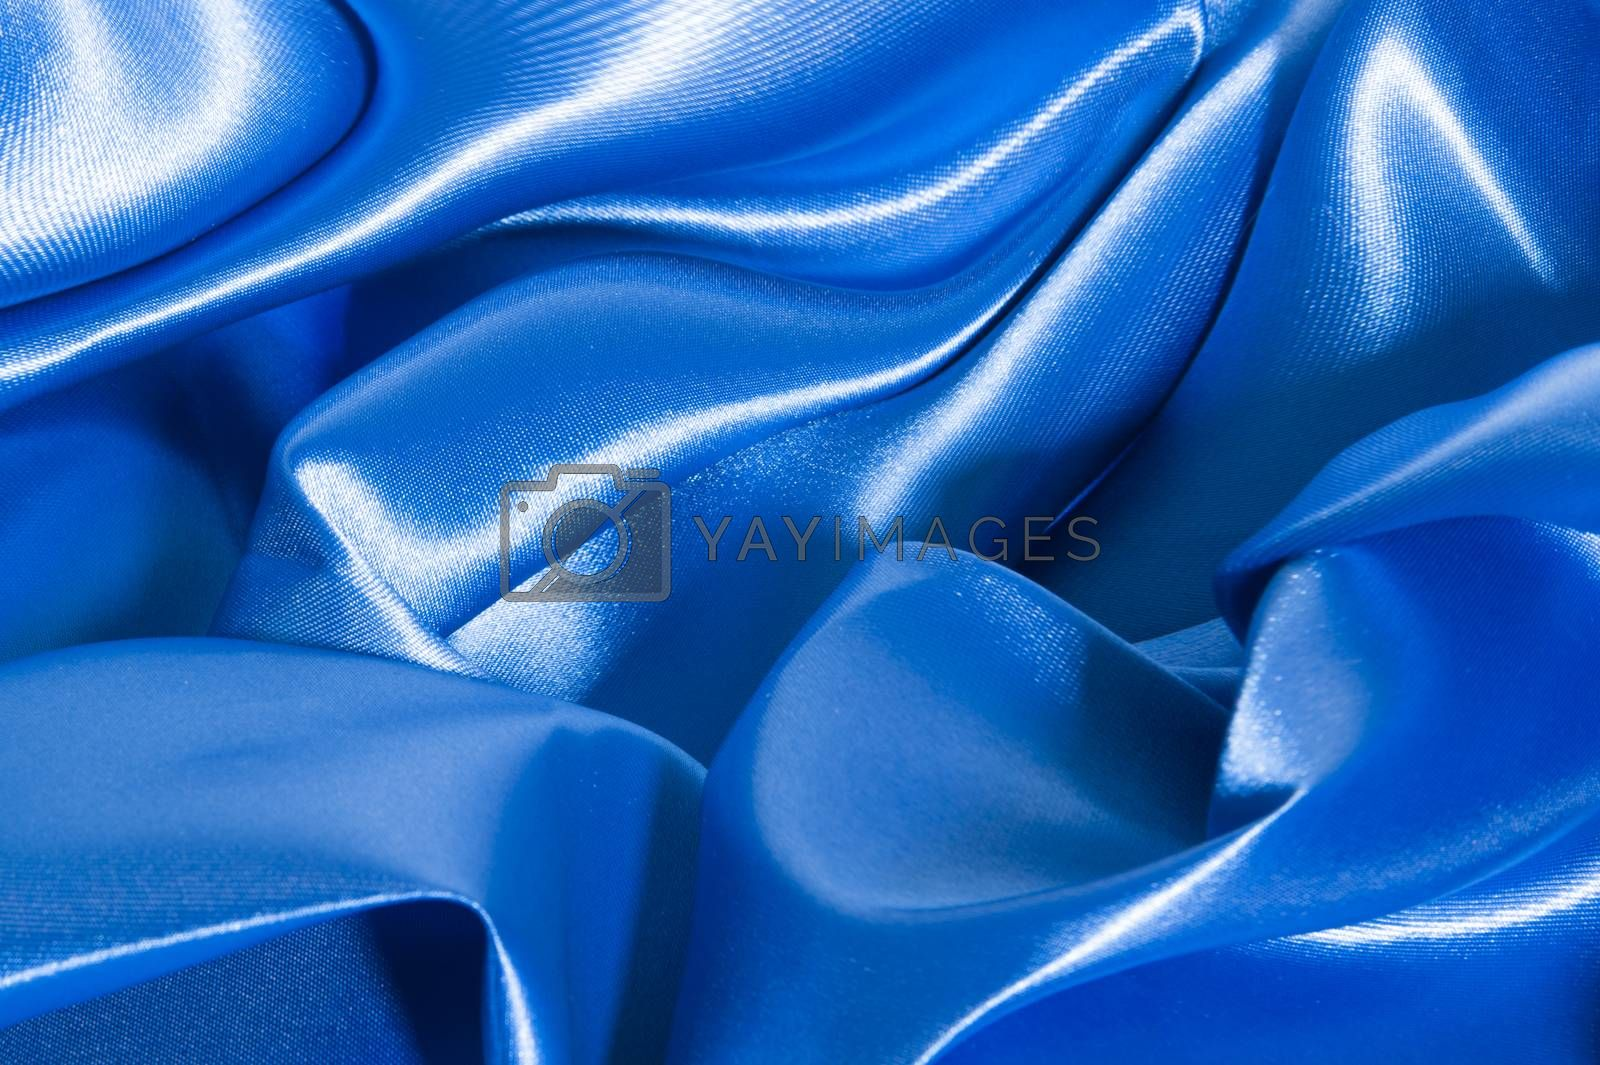 background with a blue fabric by carla720